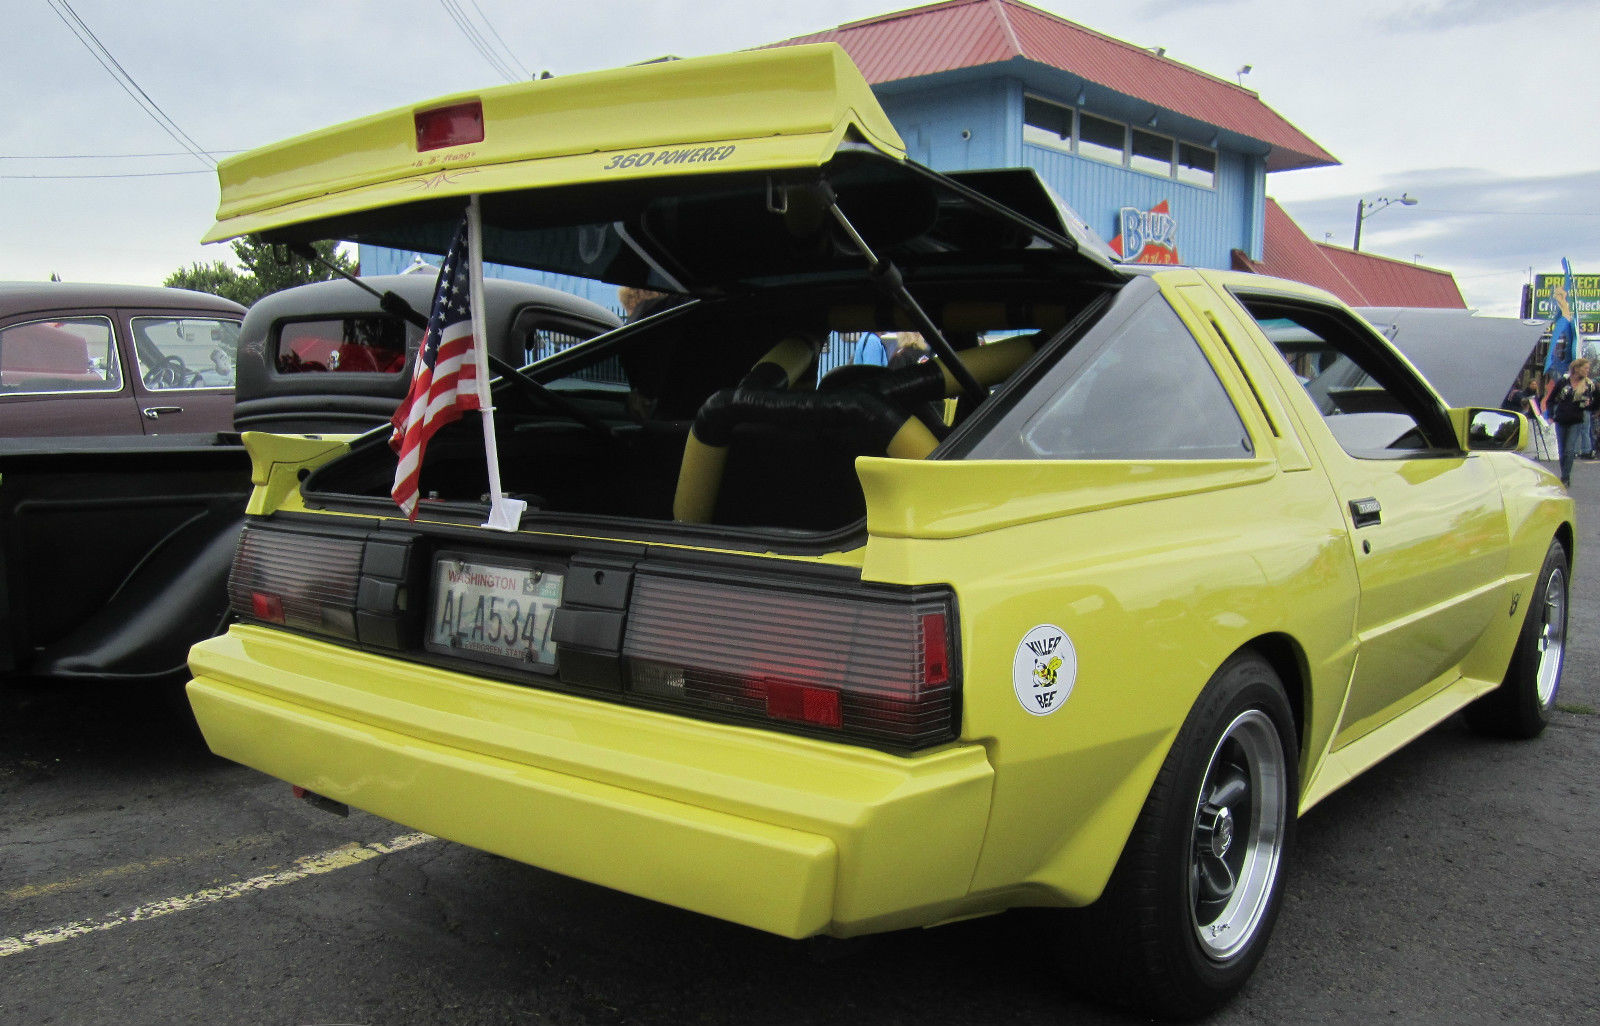 1988 Chrysler Conquest Tsi For Sale Or Trade: 1988 Chrysler Conquest V-8 Pro. Built For Sale: Photos